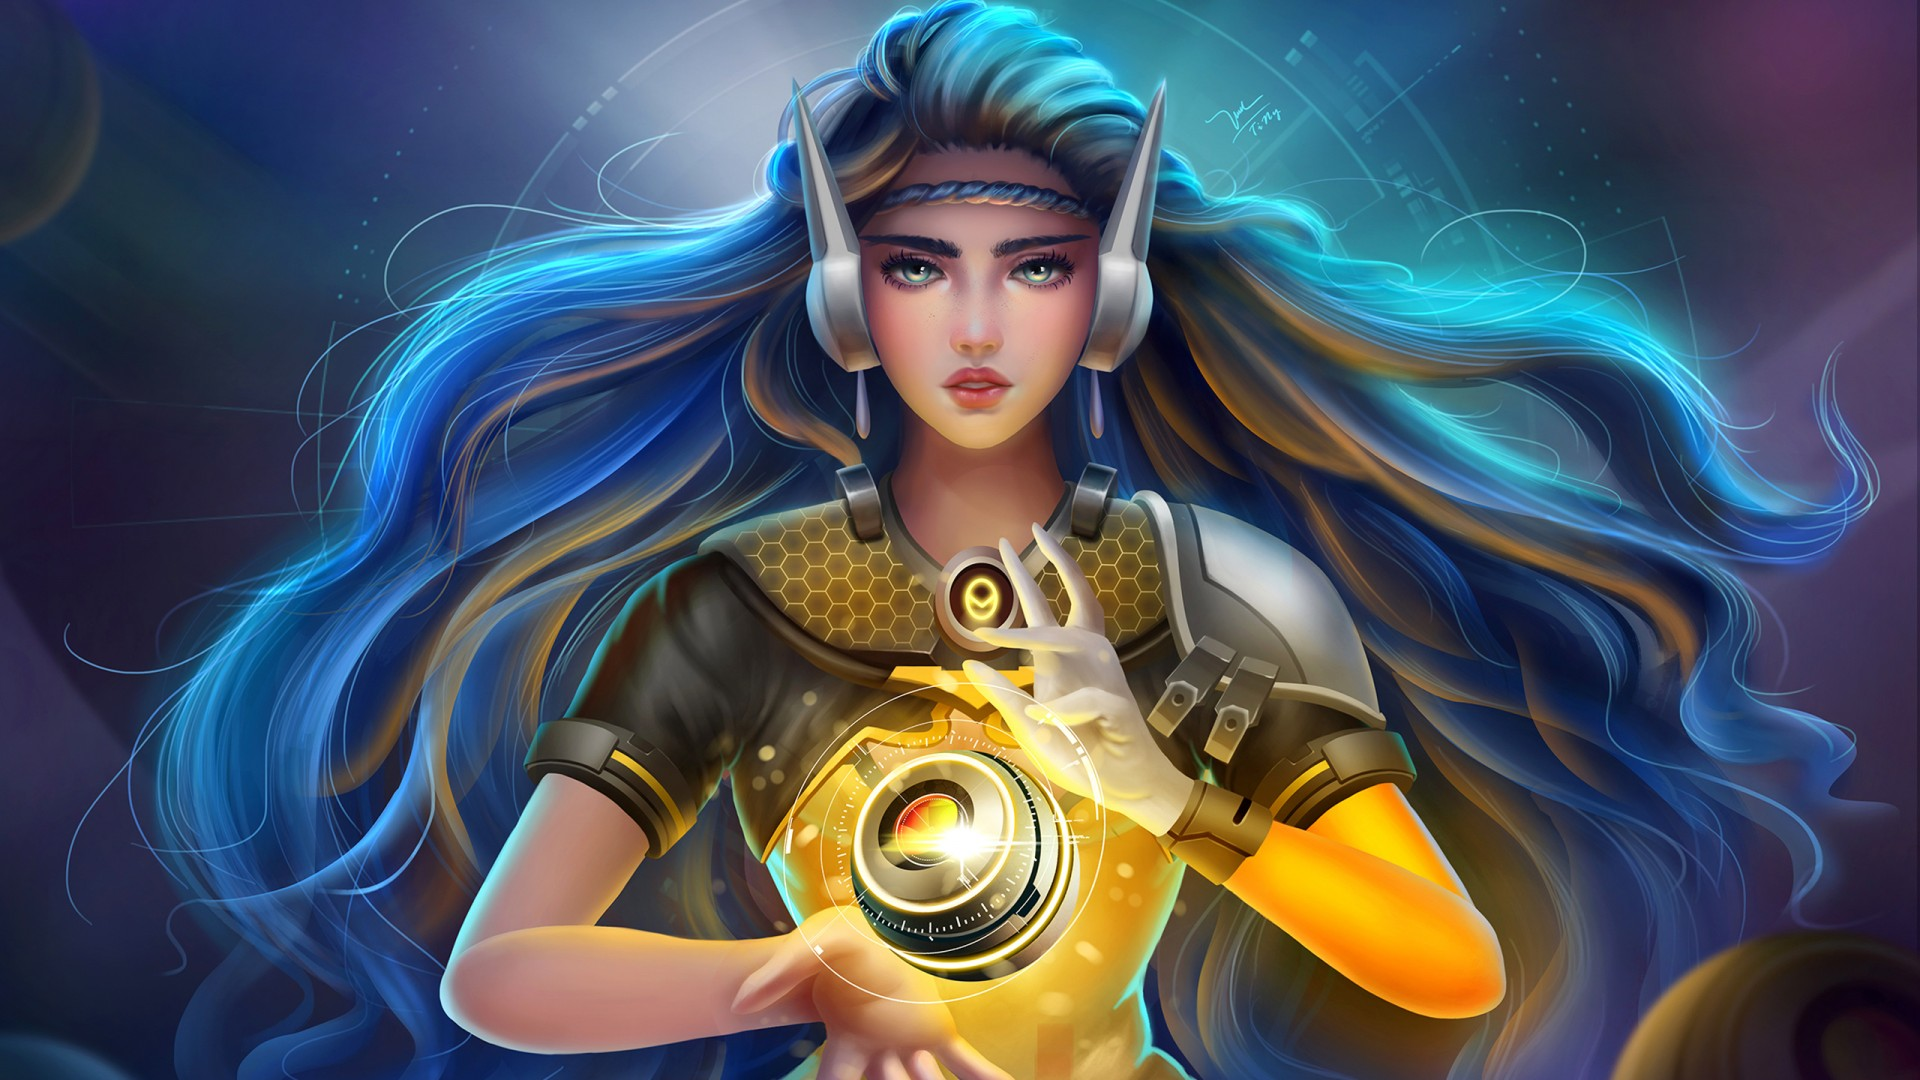 Beautiful Cartoon Girl Hd Wallpaper Symmetra Overwatch Artwork Wallpapers Hd Wallpapers Id